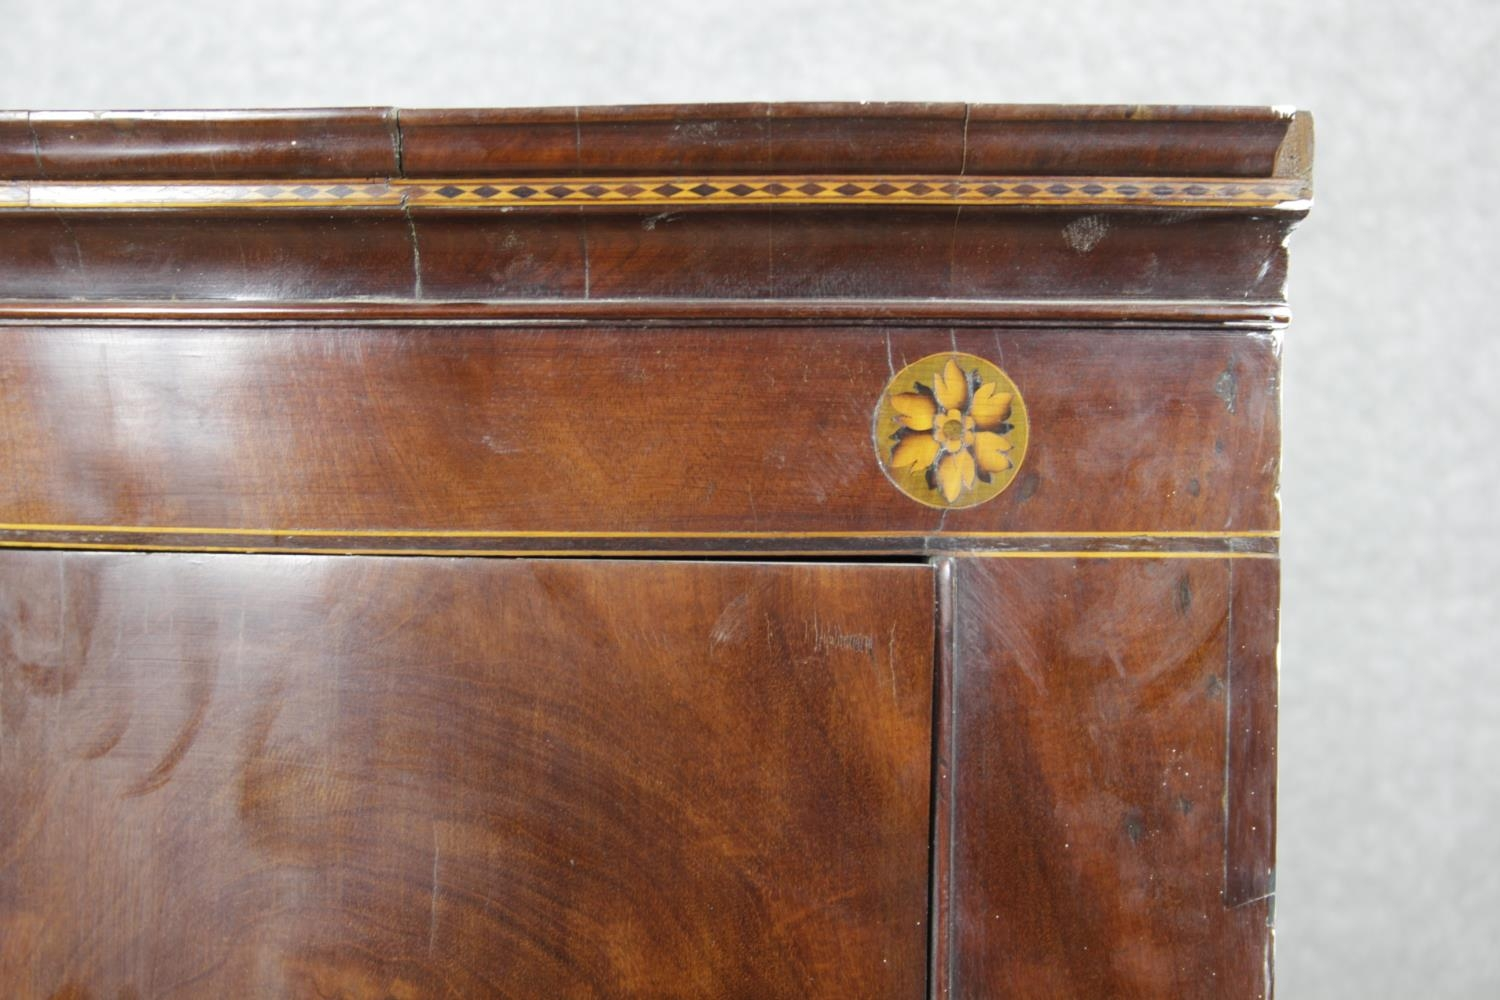 A Georgian figured mahogany bowfronted corner cupboard with satinwood and olivewood conch and floral - Image 8 of 14